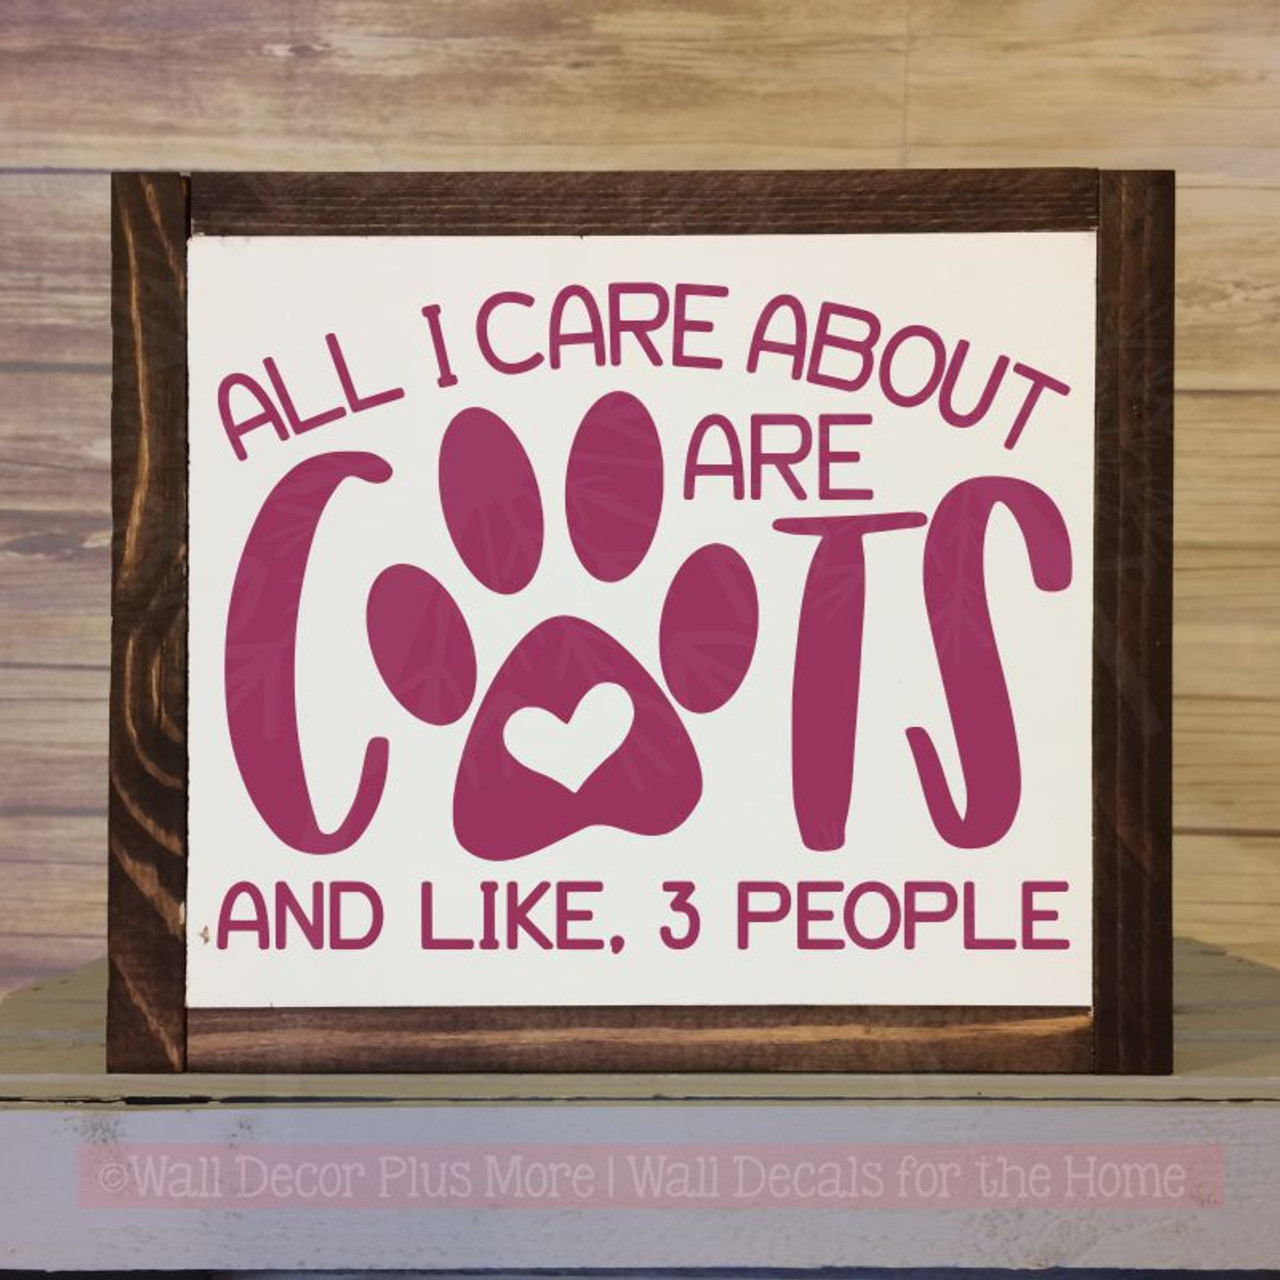 Cat Sayings Decals Care About Cats 3 People Pet Quotes Wall Sticker